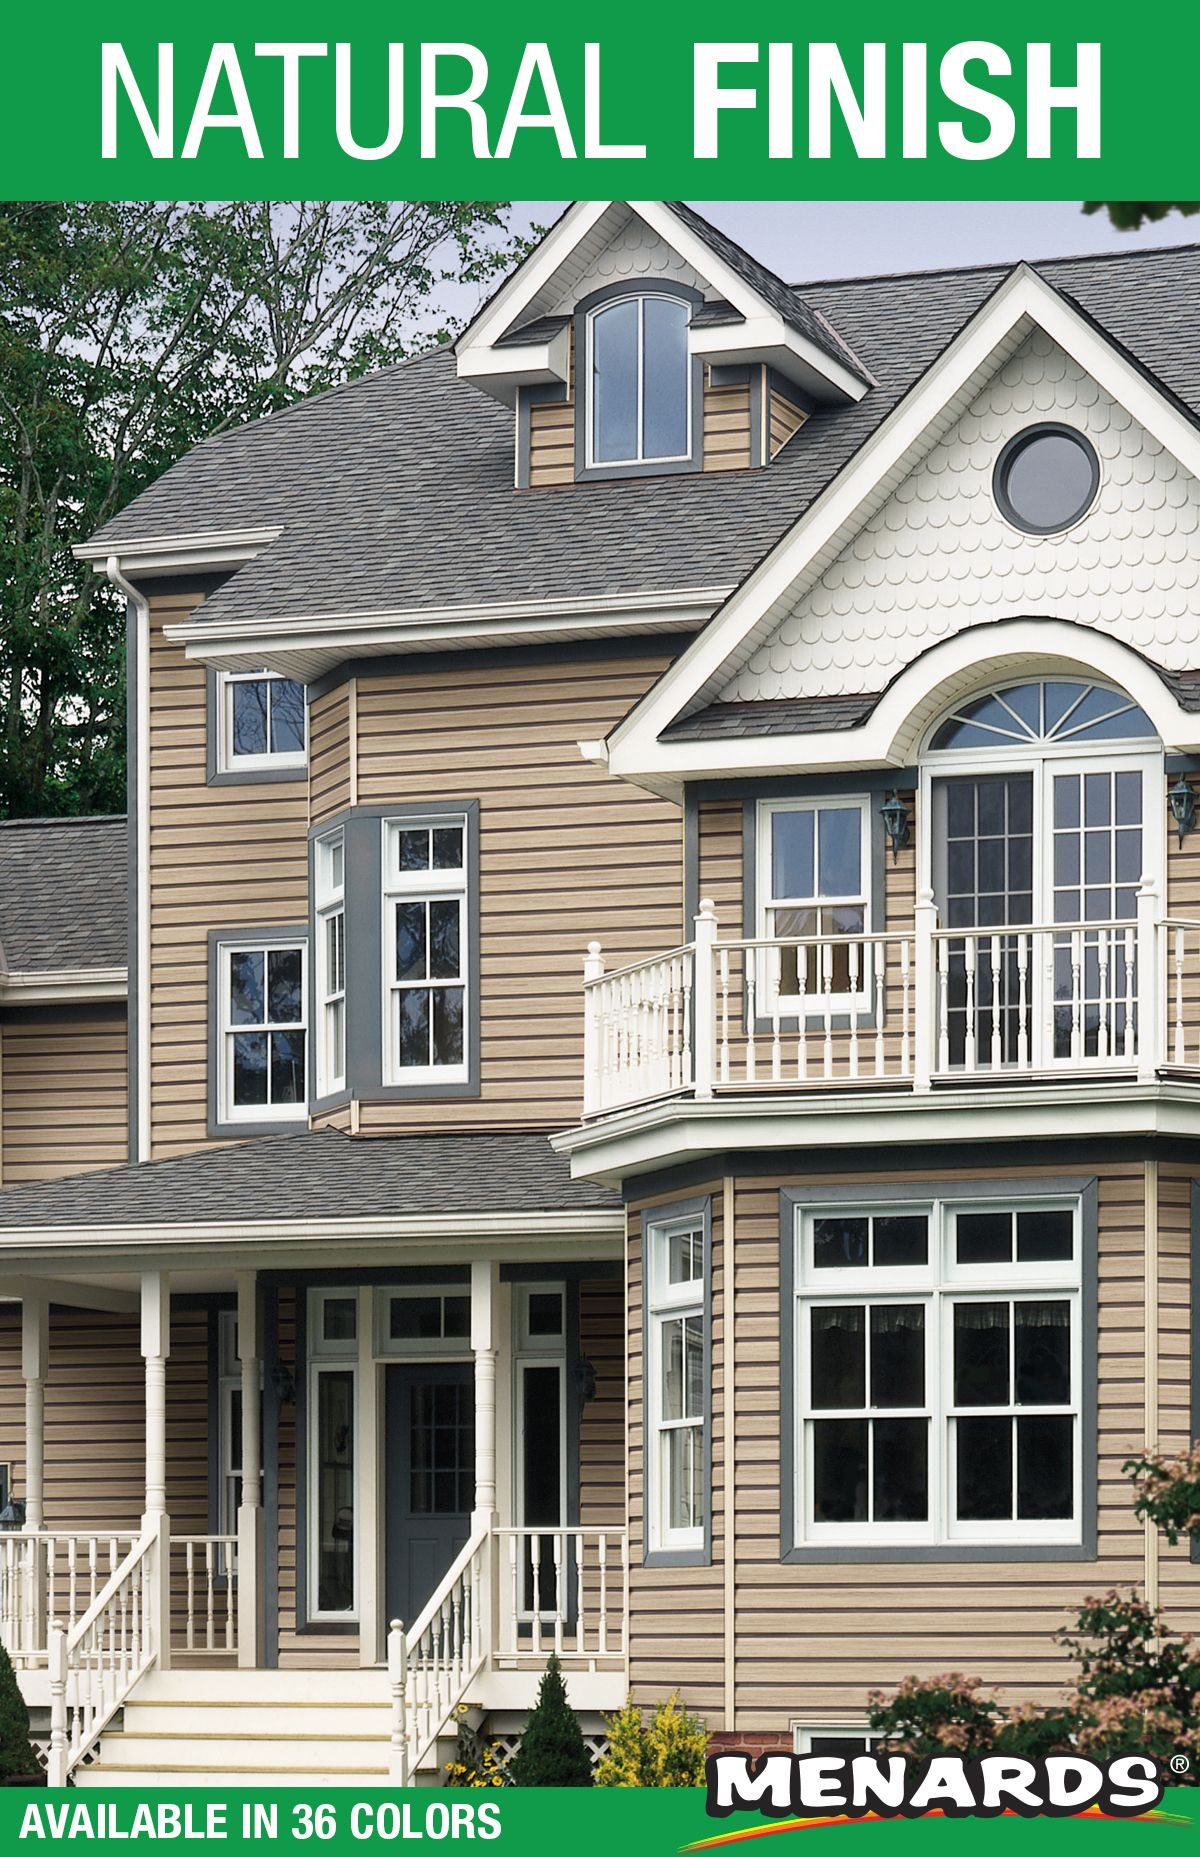 Monogram 46 Premium Double 4 Vinyl Siding Offers A Natural Looking Finish And Great Durability Vinyl Siding House Styles Curb Appeal